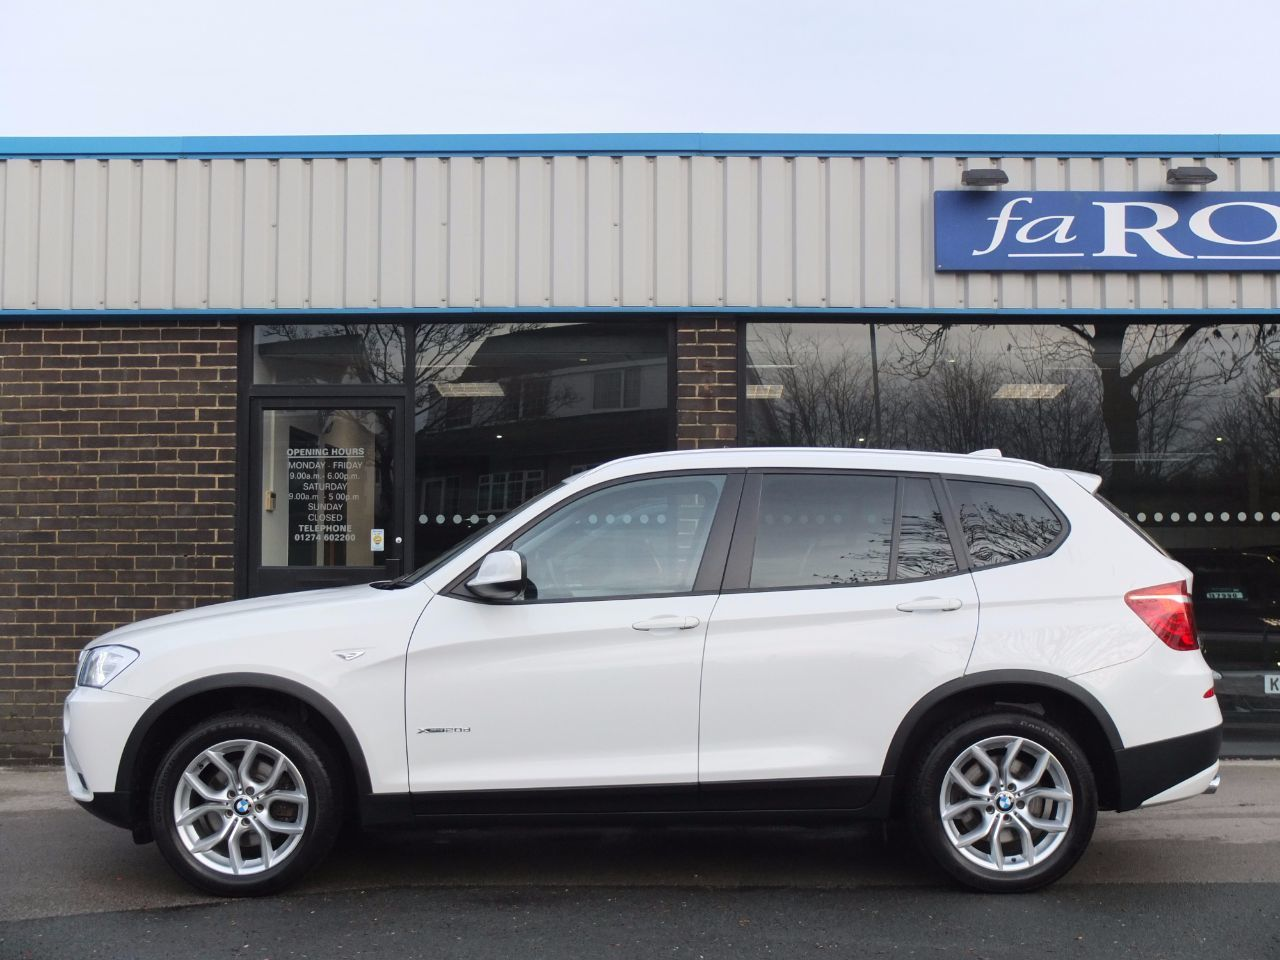 BMW X3 2.0 xDrive20d SE Auto (Pro Media and Panoramic Roof) Estate Diesel Alpine White